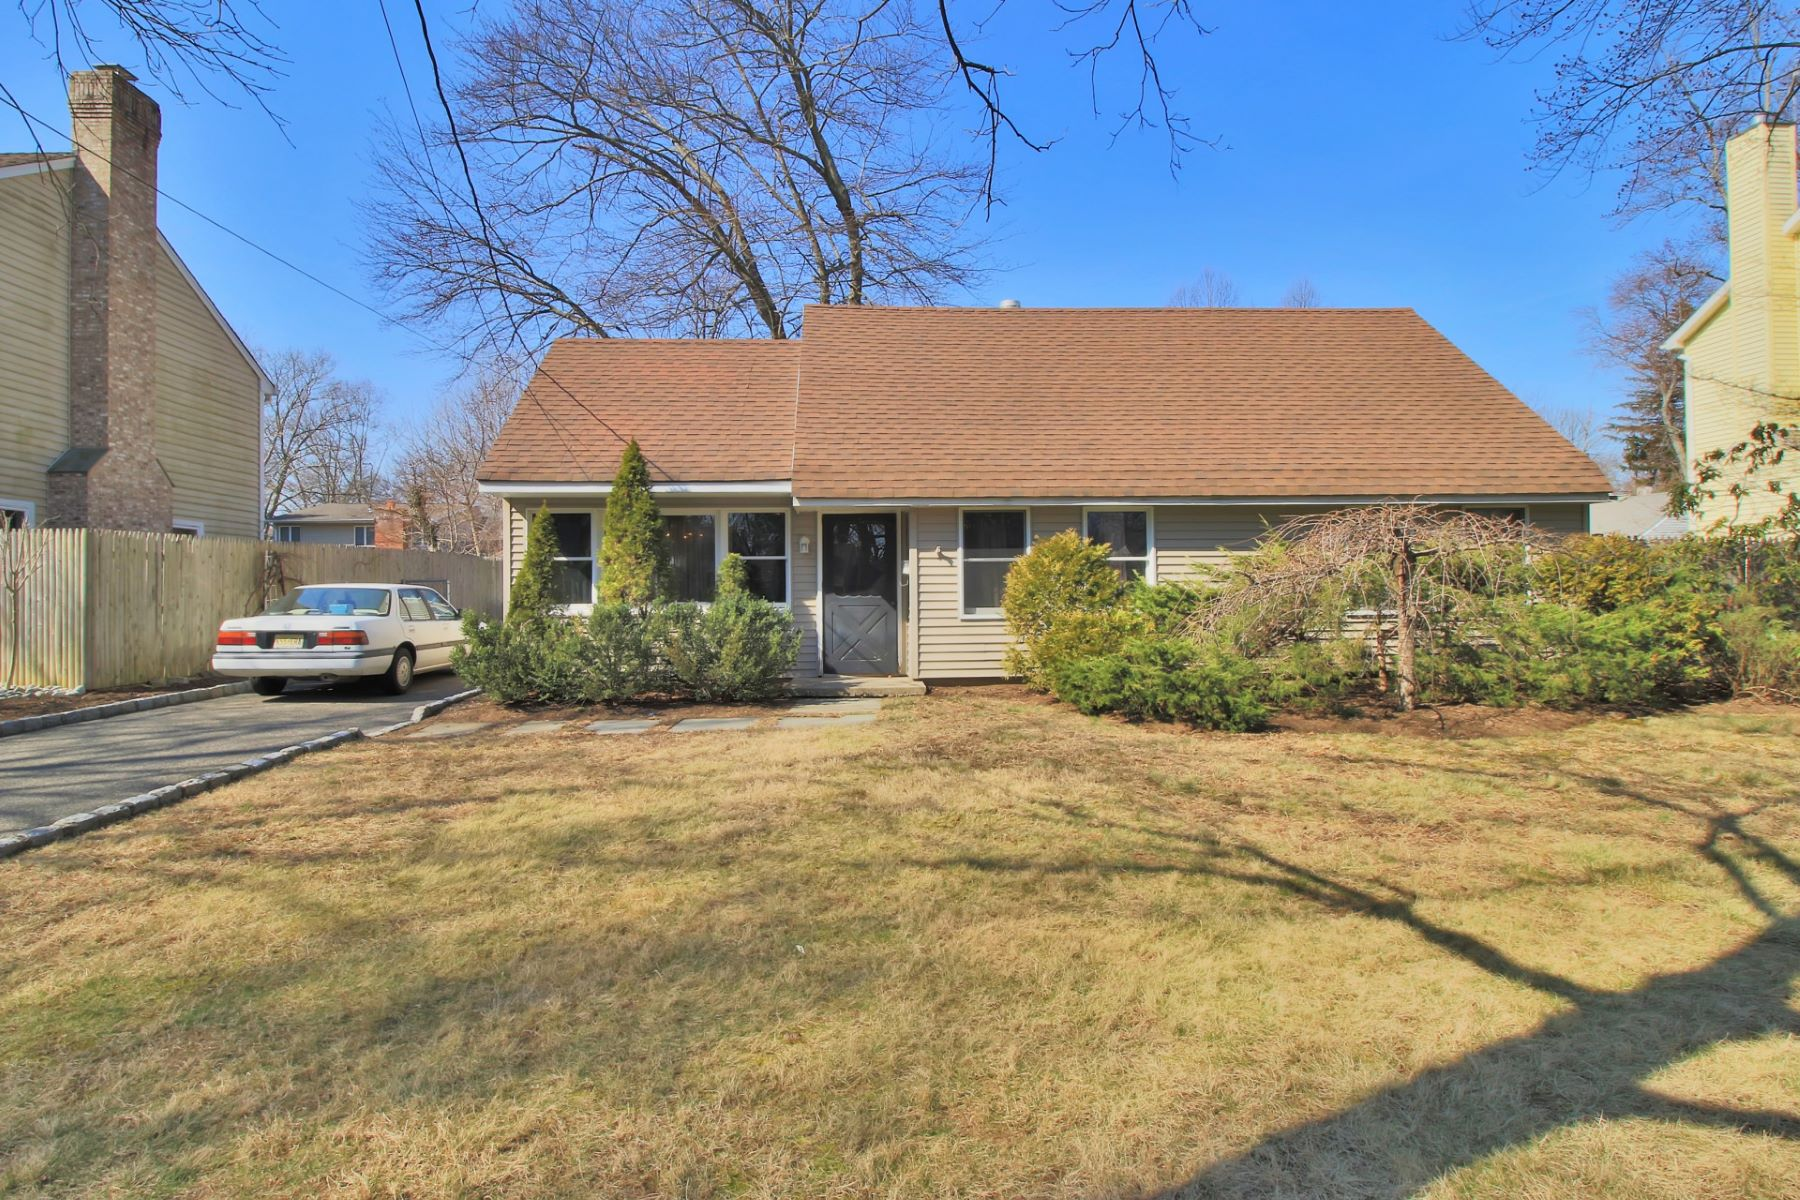 Single Family Home for Sale at Charming Cape 48 Lockerby Ln Westwood, New Jersey 07675 United States